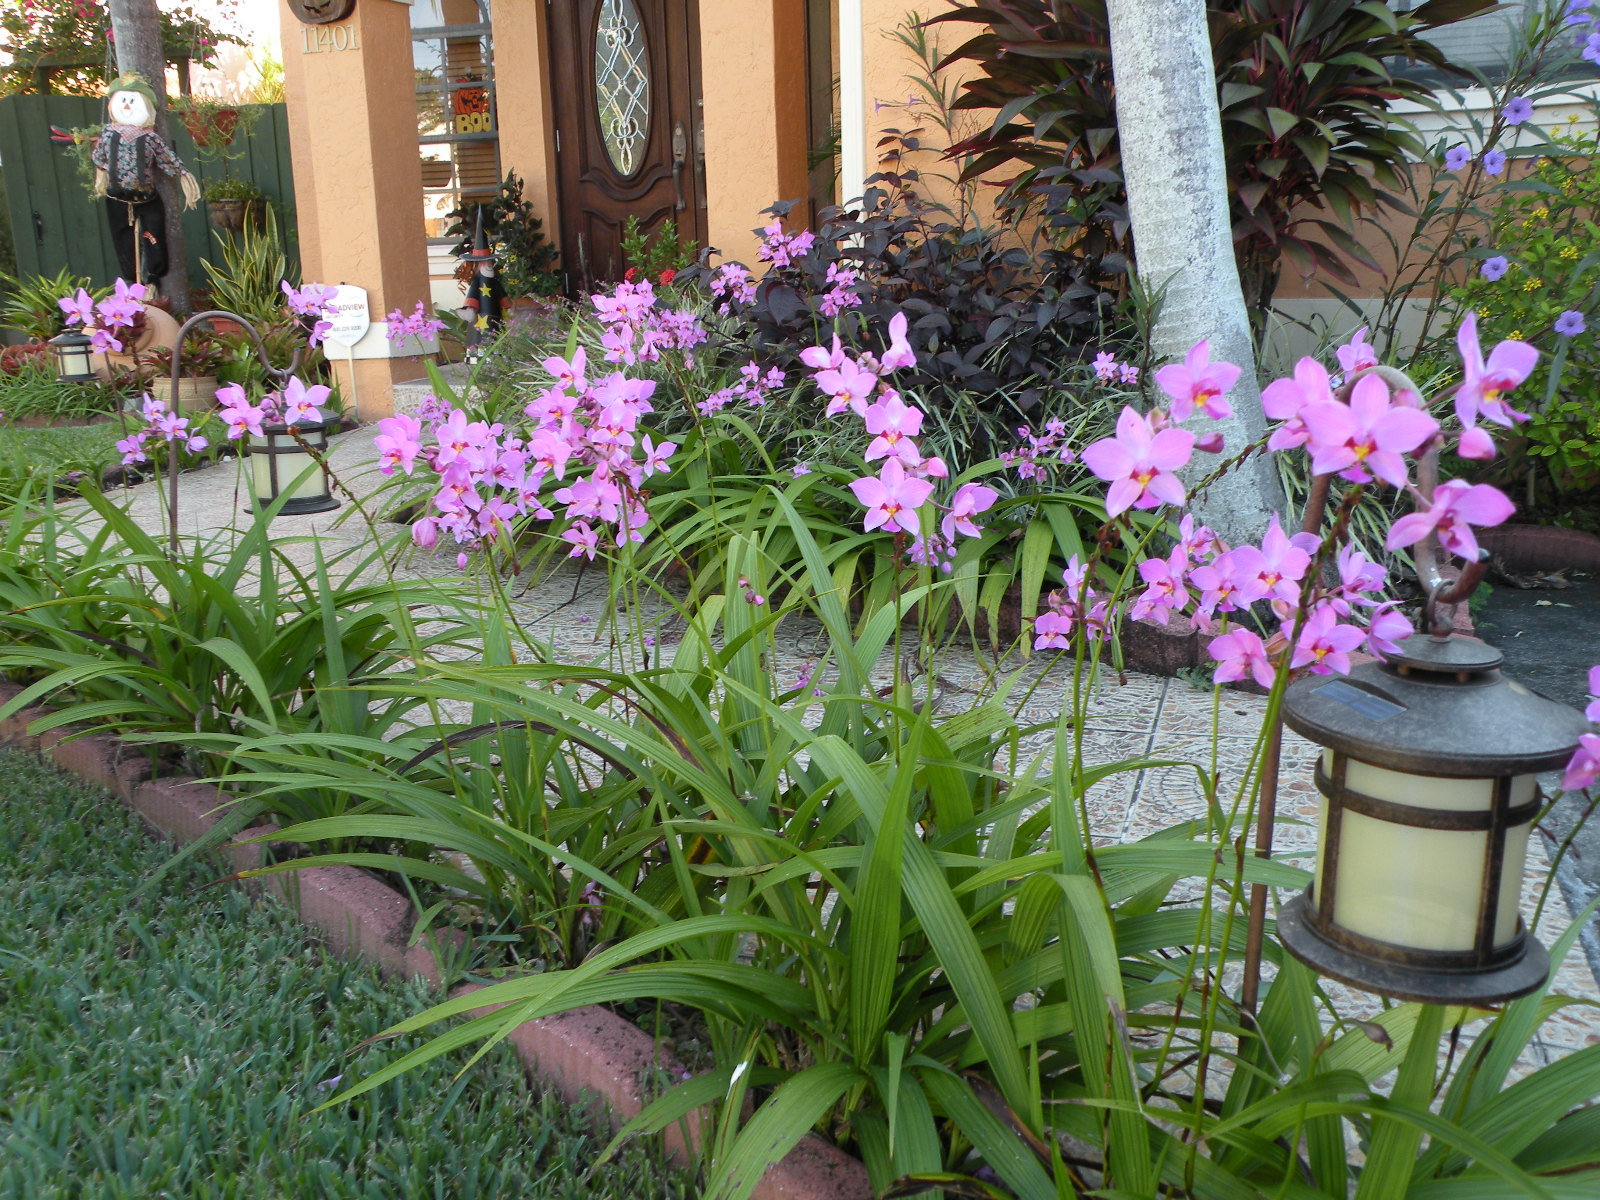 Ligustrum in addition Magnoliae moreover Herbs together with Bromeliads In Garden also Different Soilless Media For Growing Plants. on growing orchids in florida